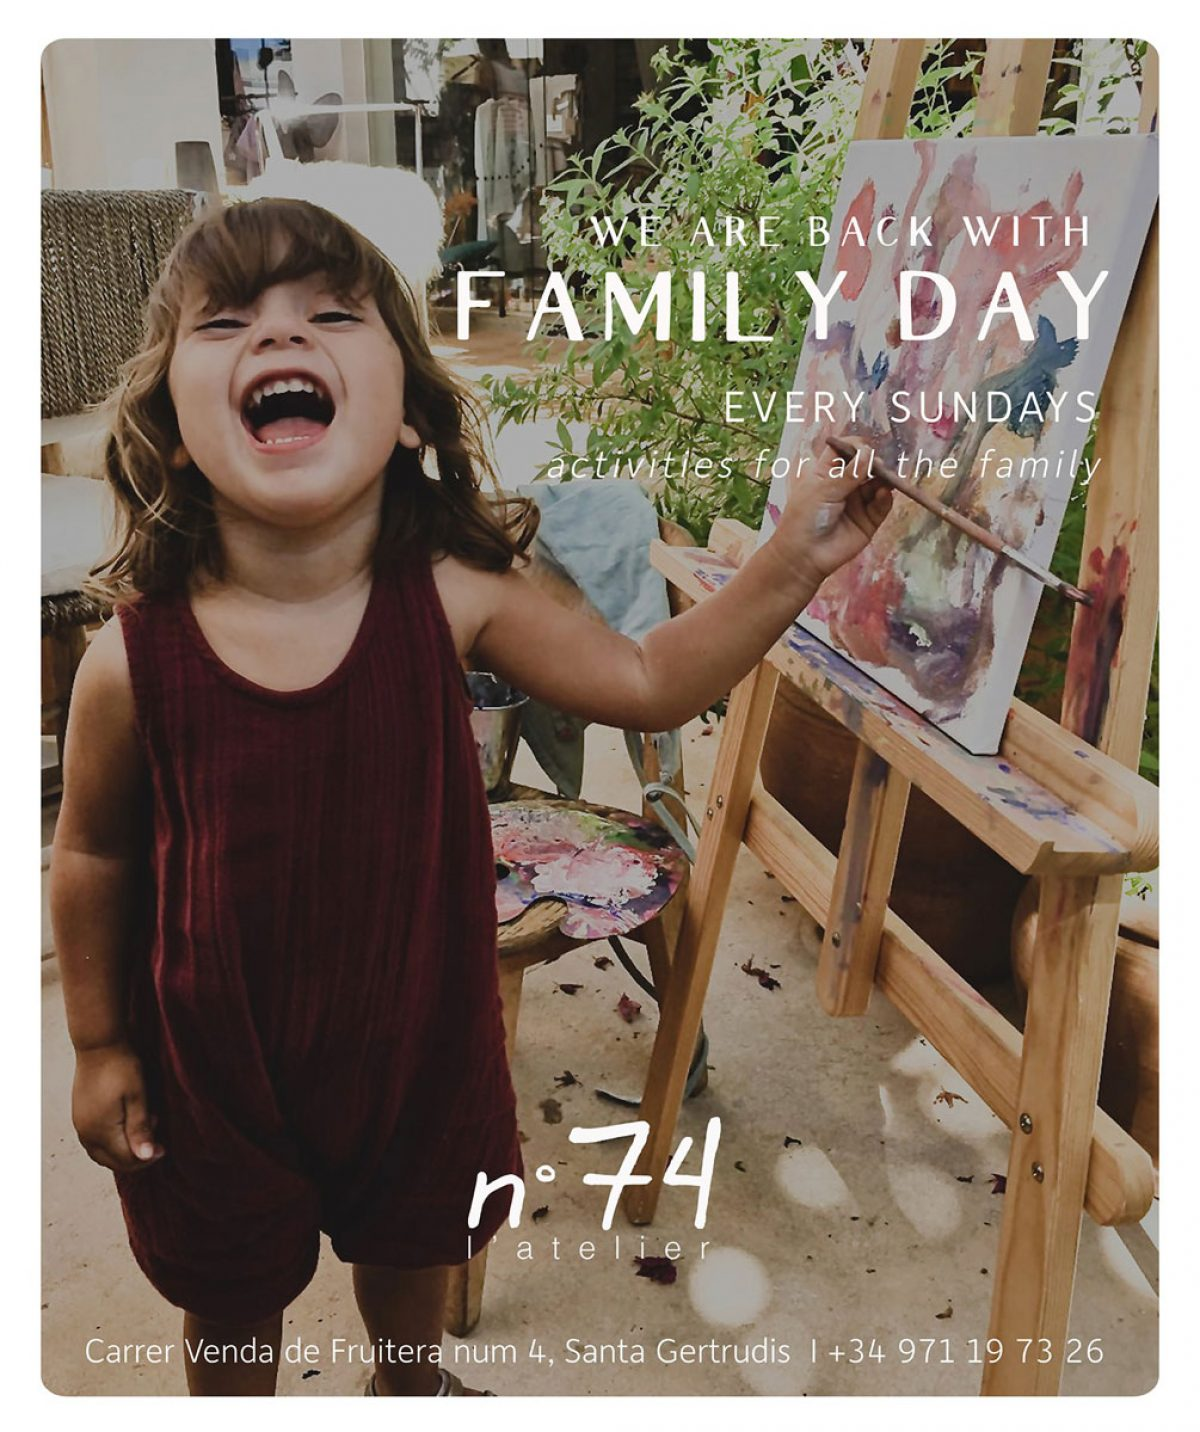 family-day-l-altelier-num-74-ibiza-2020-welcometoibiza